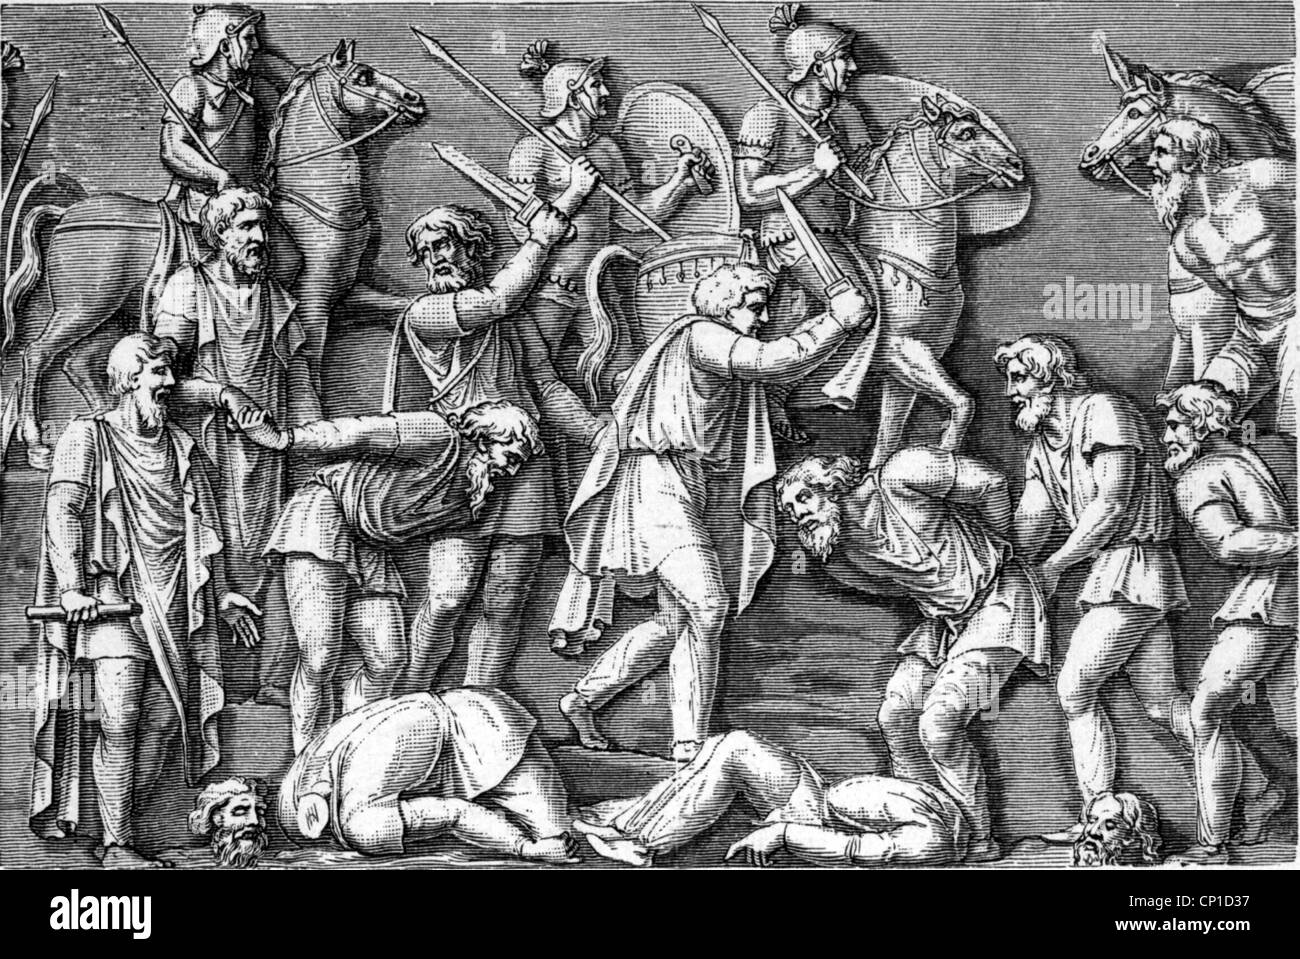 events, Marcomannic Wars 166 - 180, the King of the Quadi watching executions, wood engraving, 19th century, after - Stock Image